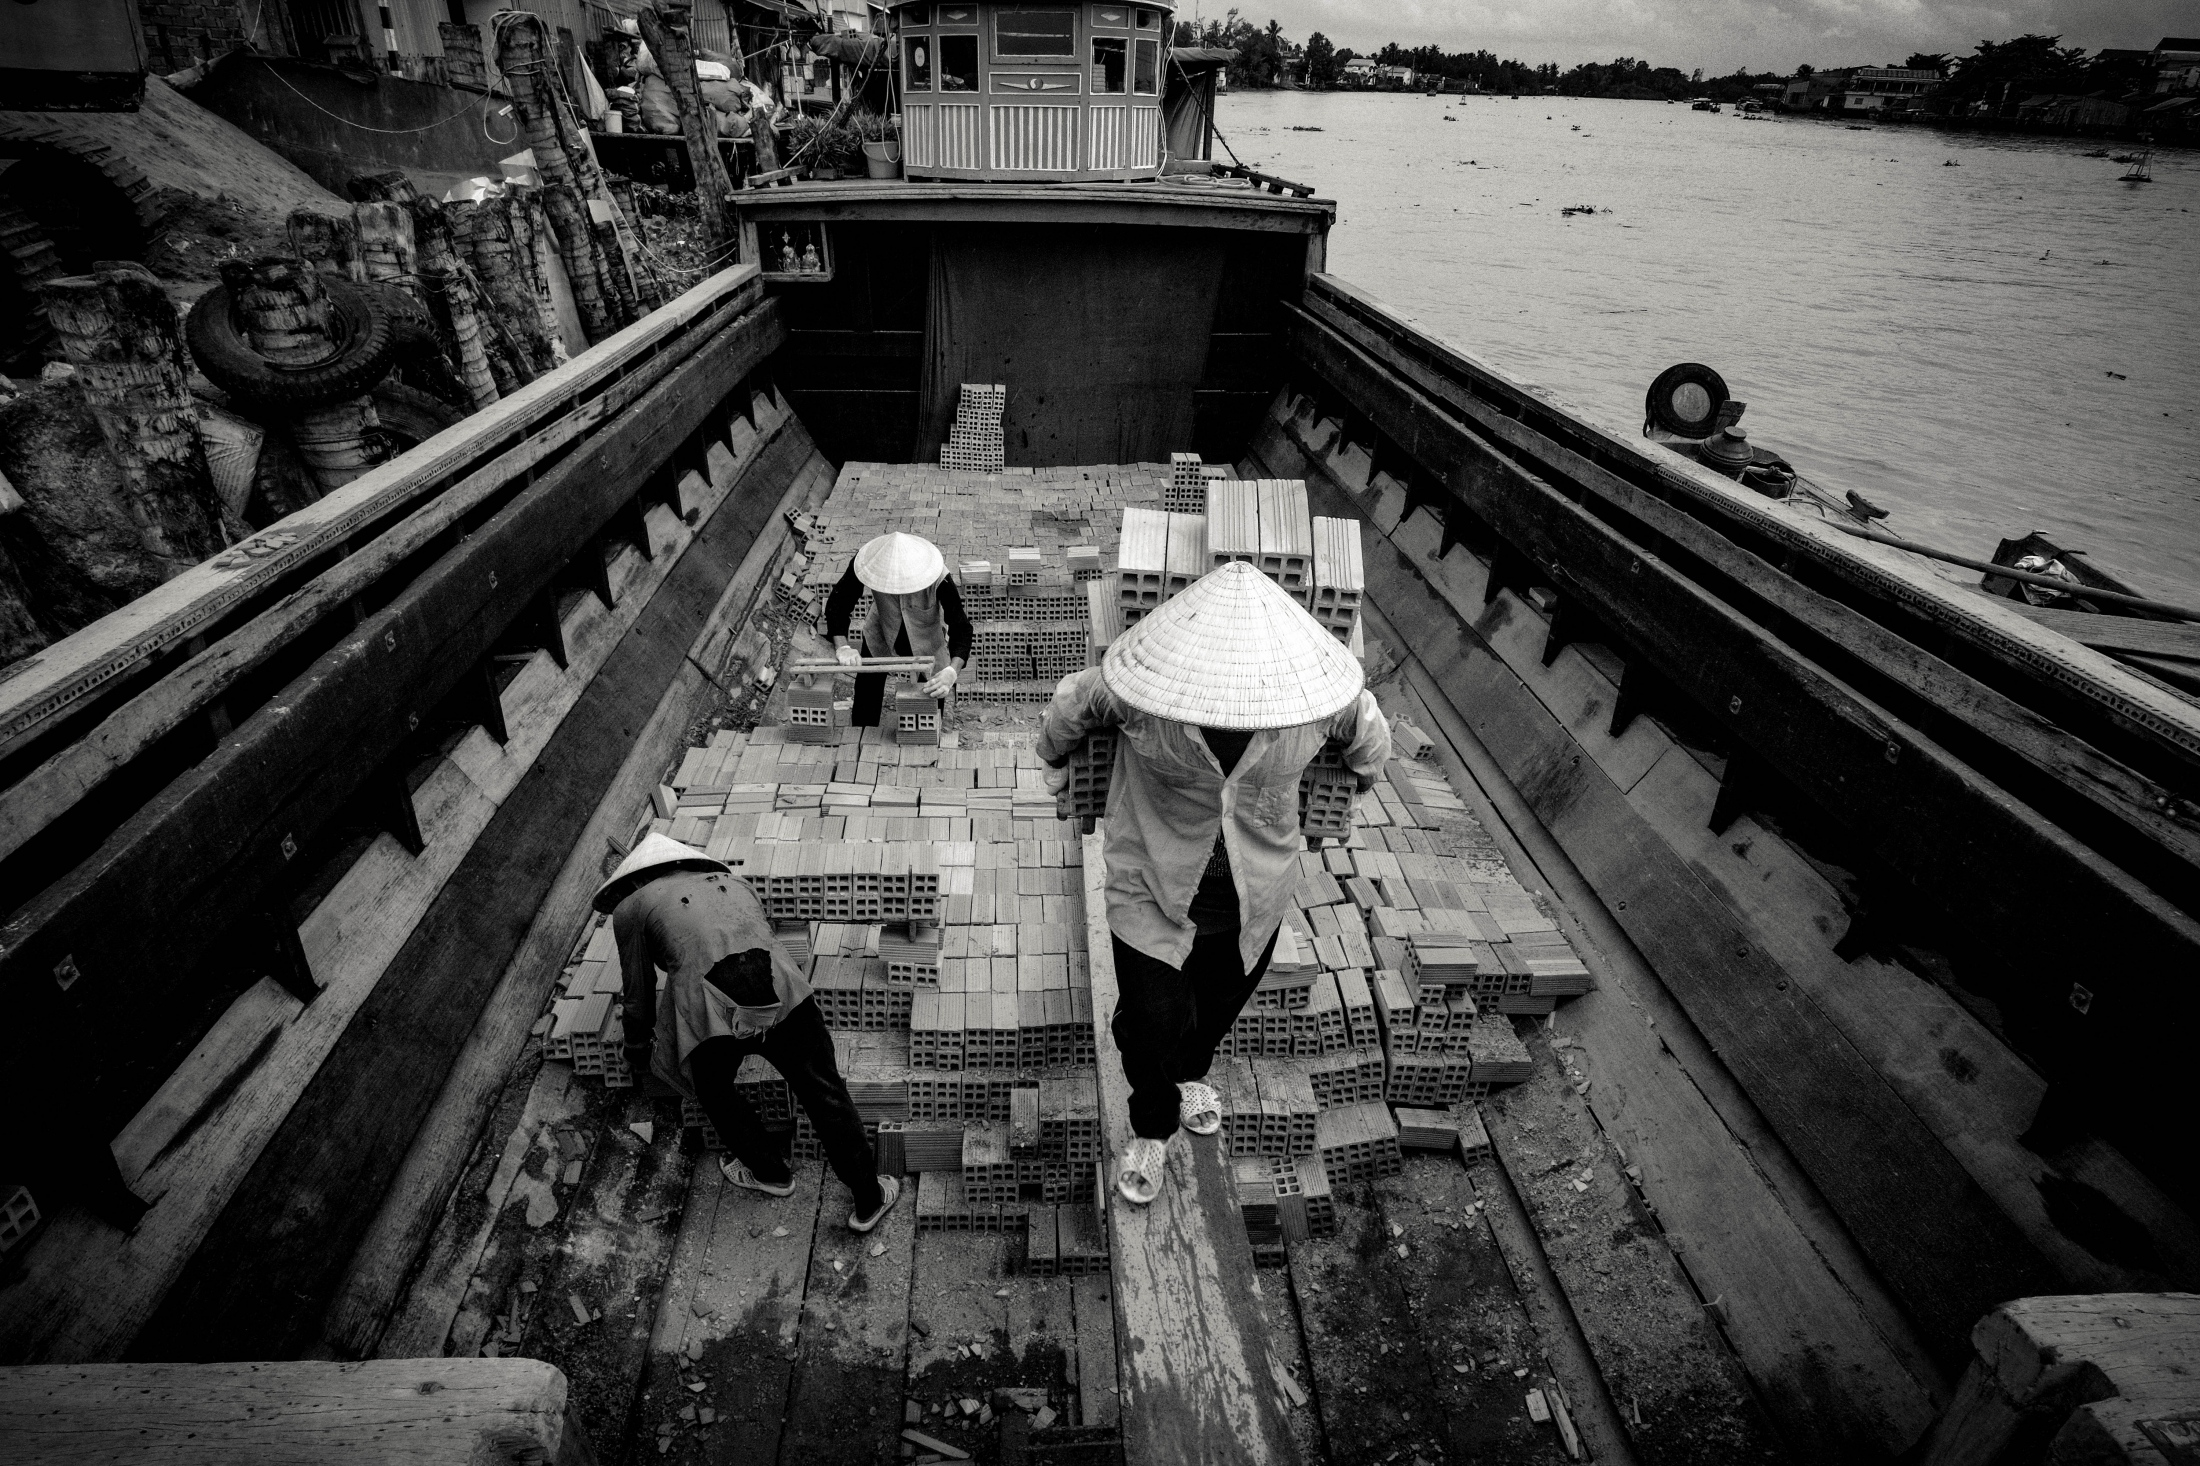 <p>Brick Barge, Can Tho, Mekong...